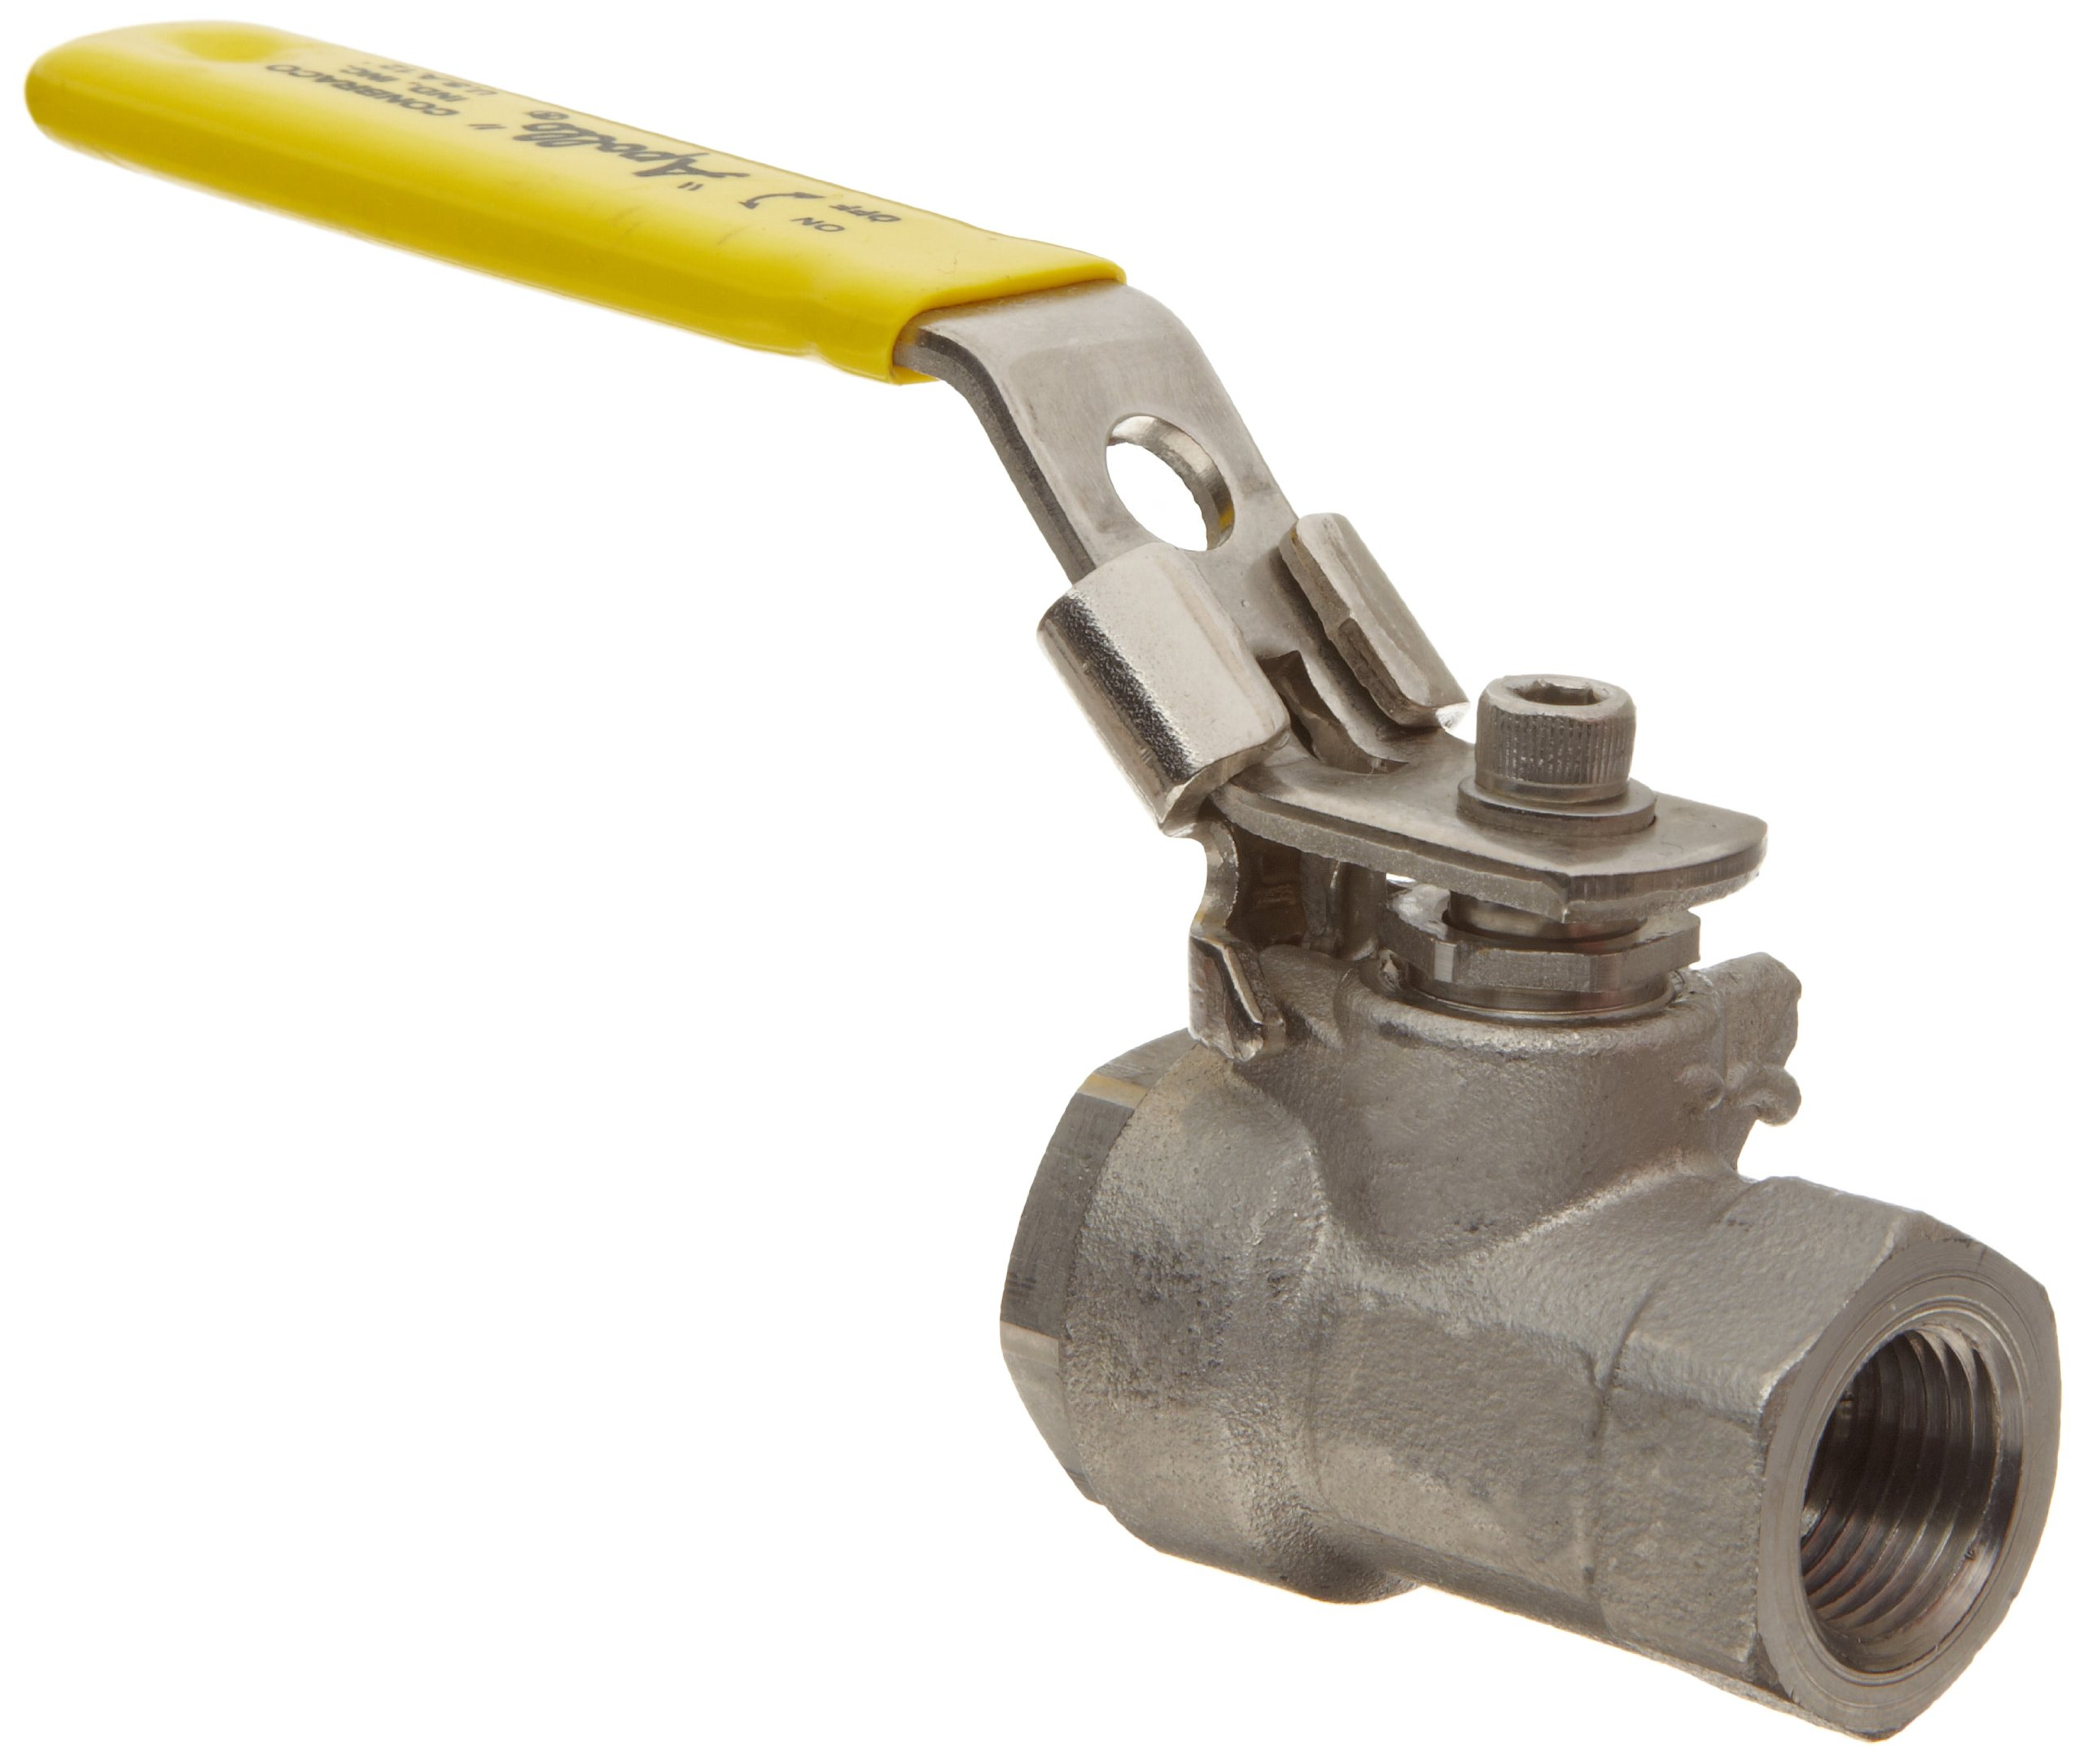 Apollo 76F-100-A Series Stainless Steel Ball Valve, Two Piece, Inline, Latch-Lock Lever with Nut, 2'' NPT Female